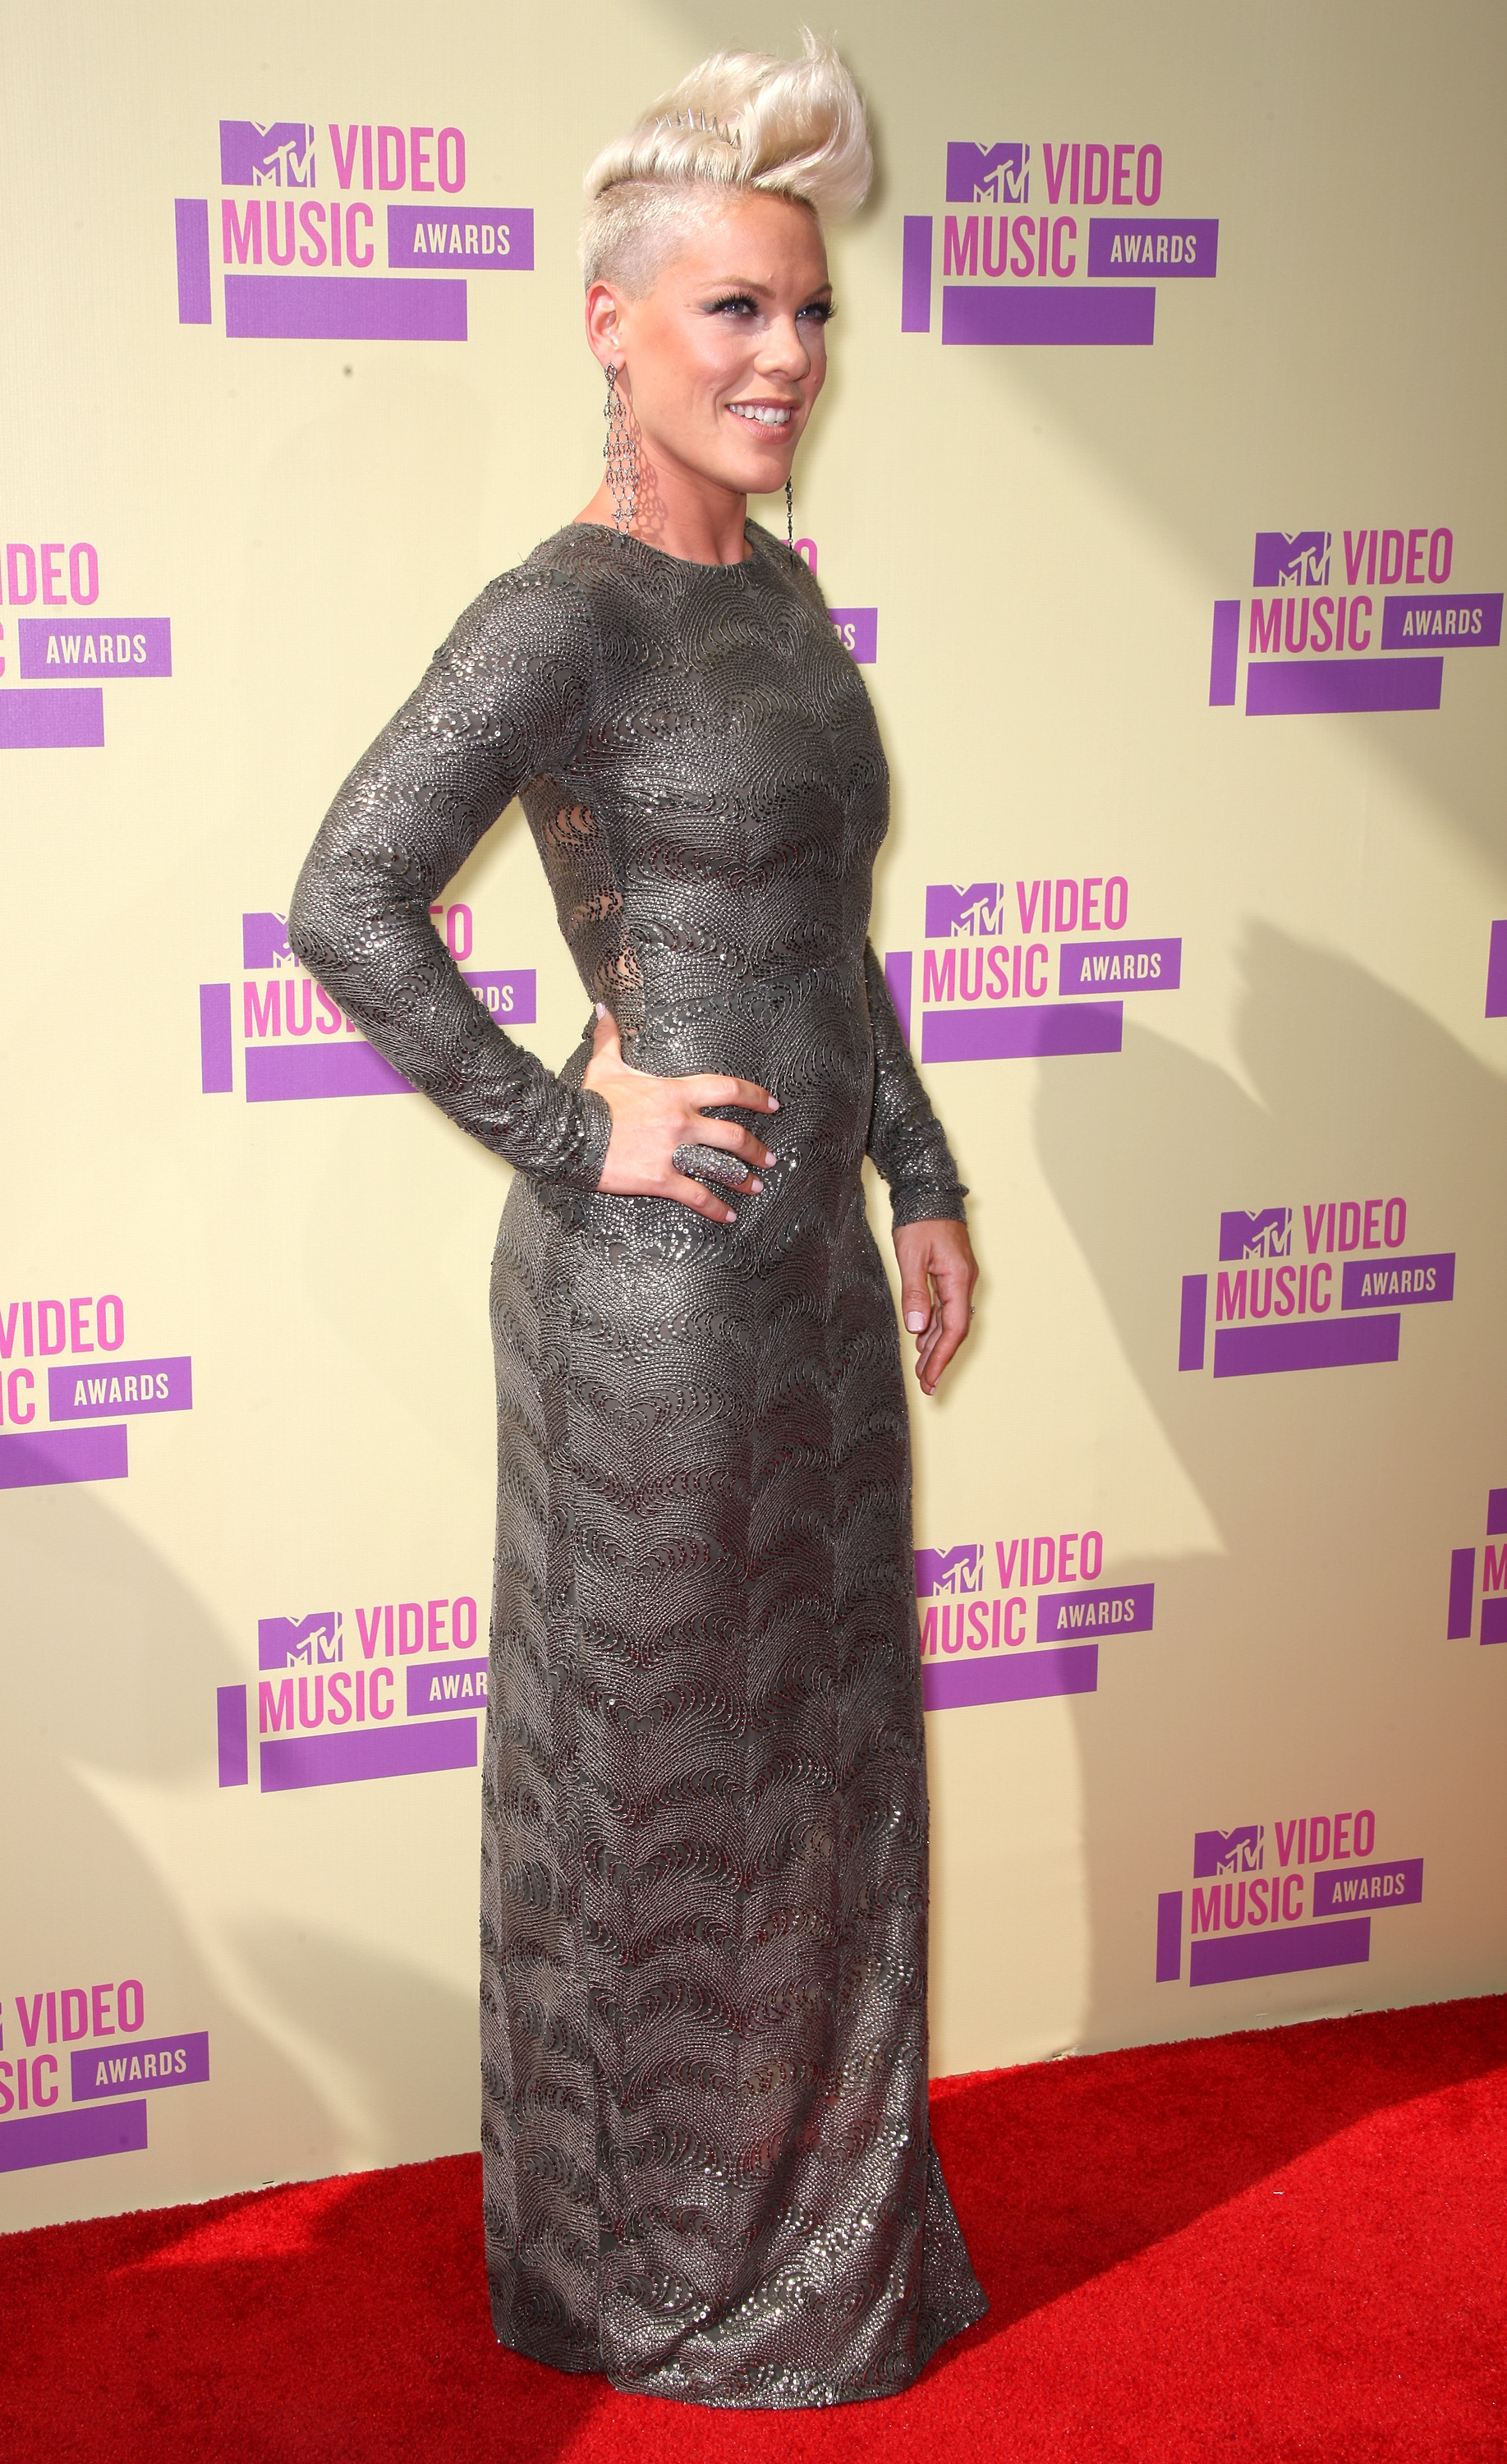 Top 10 2012 MTV Video Music Awards red carpet looks - let's hope we see style this good on Sunday!